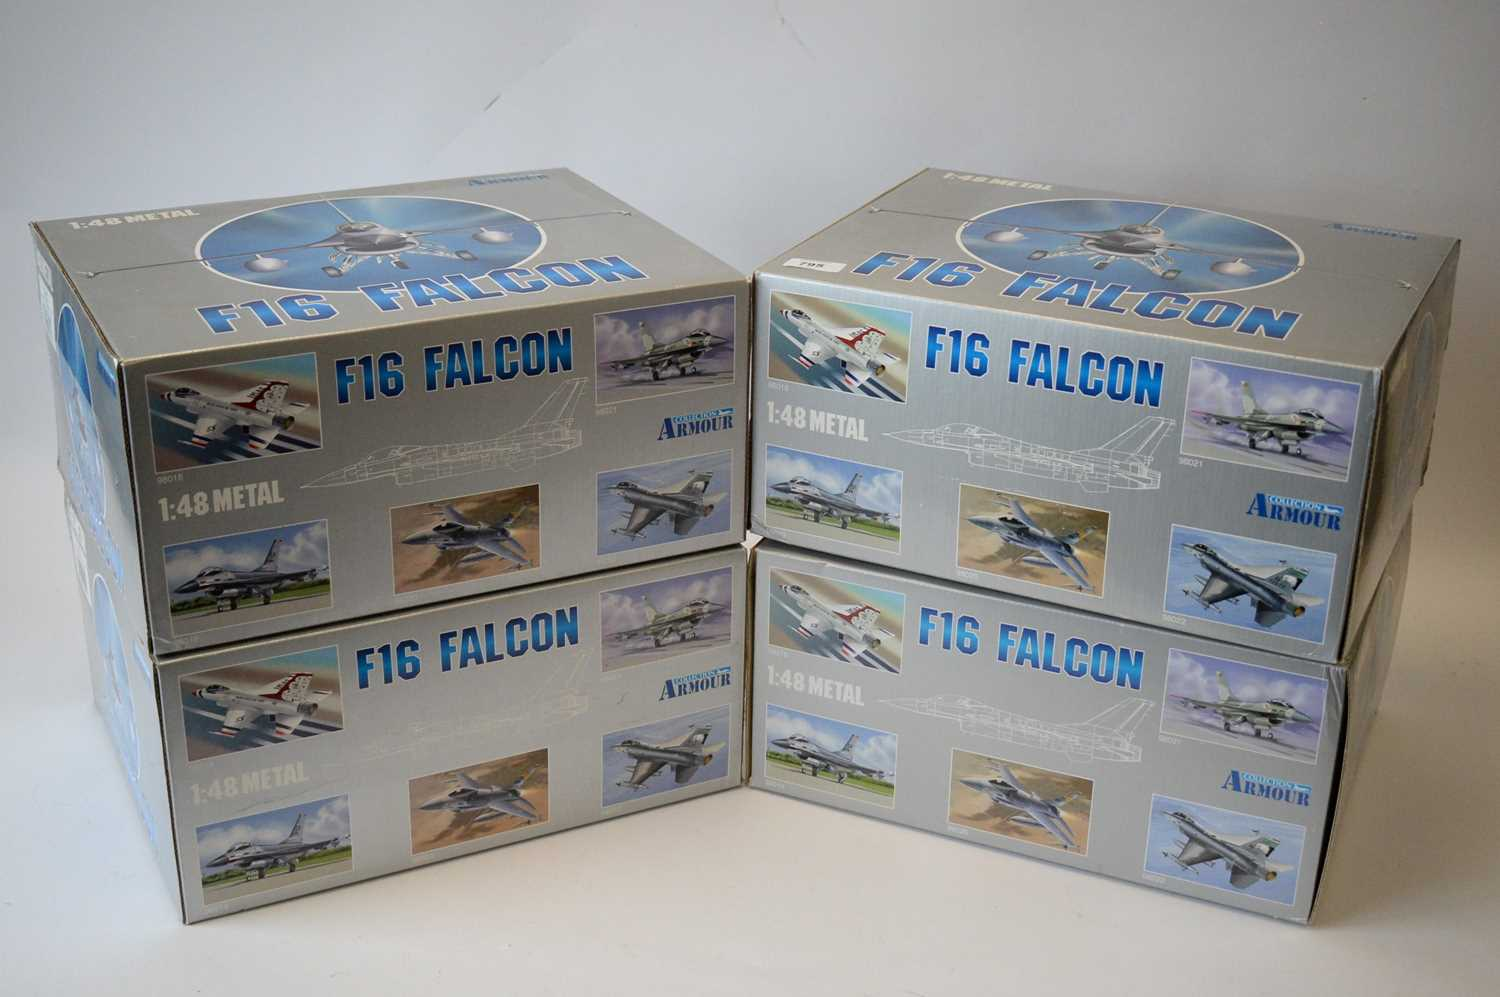 Lot 795 - Collection Armour 1:48 Scale metal diecast aeroplanes - F16 Falcon.